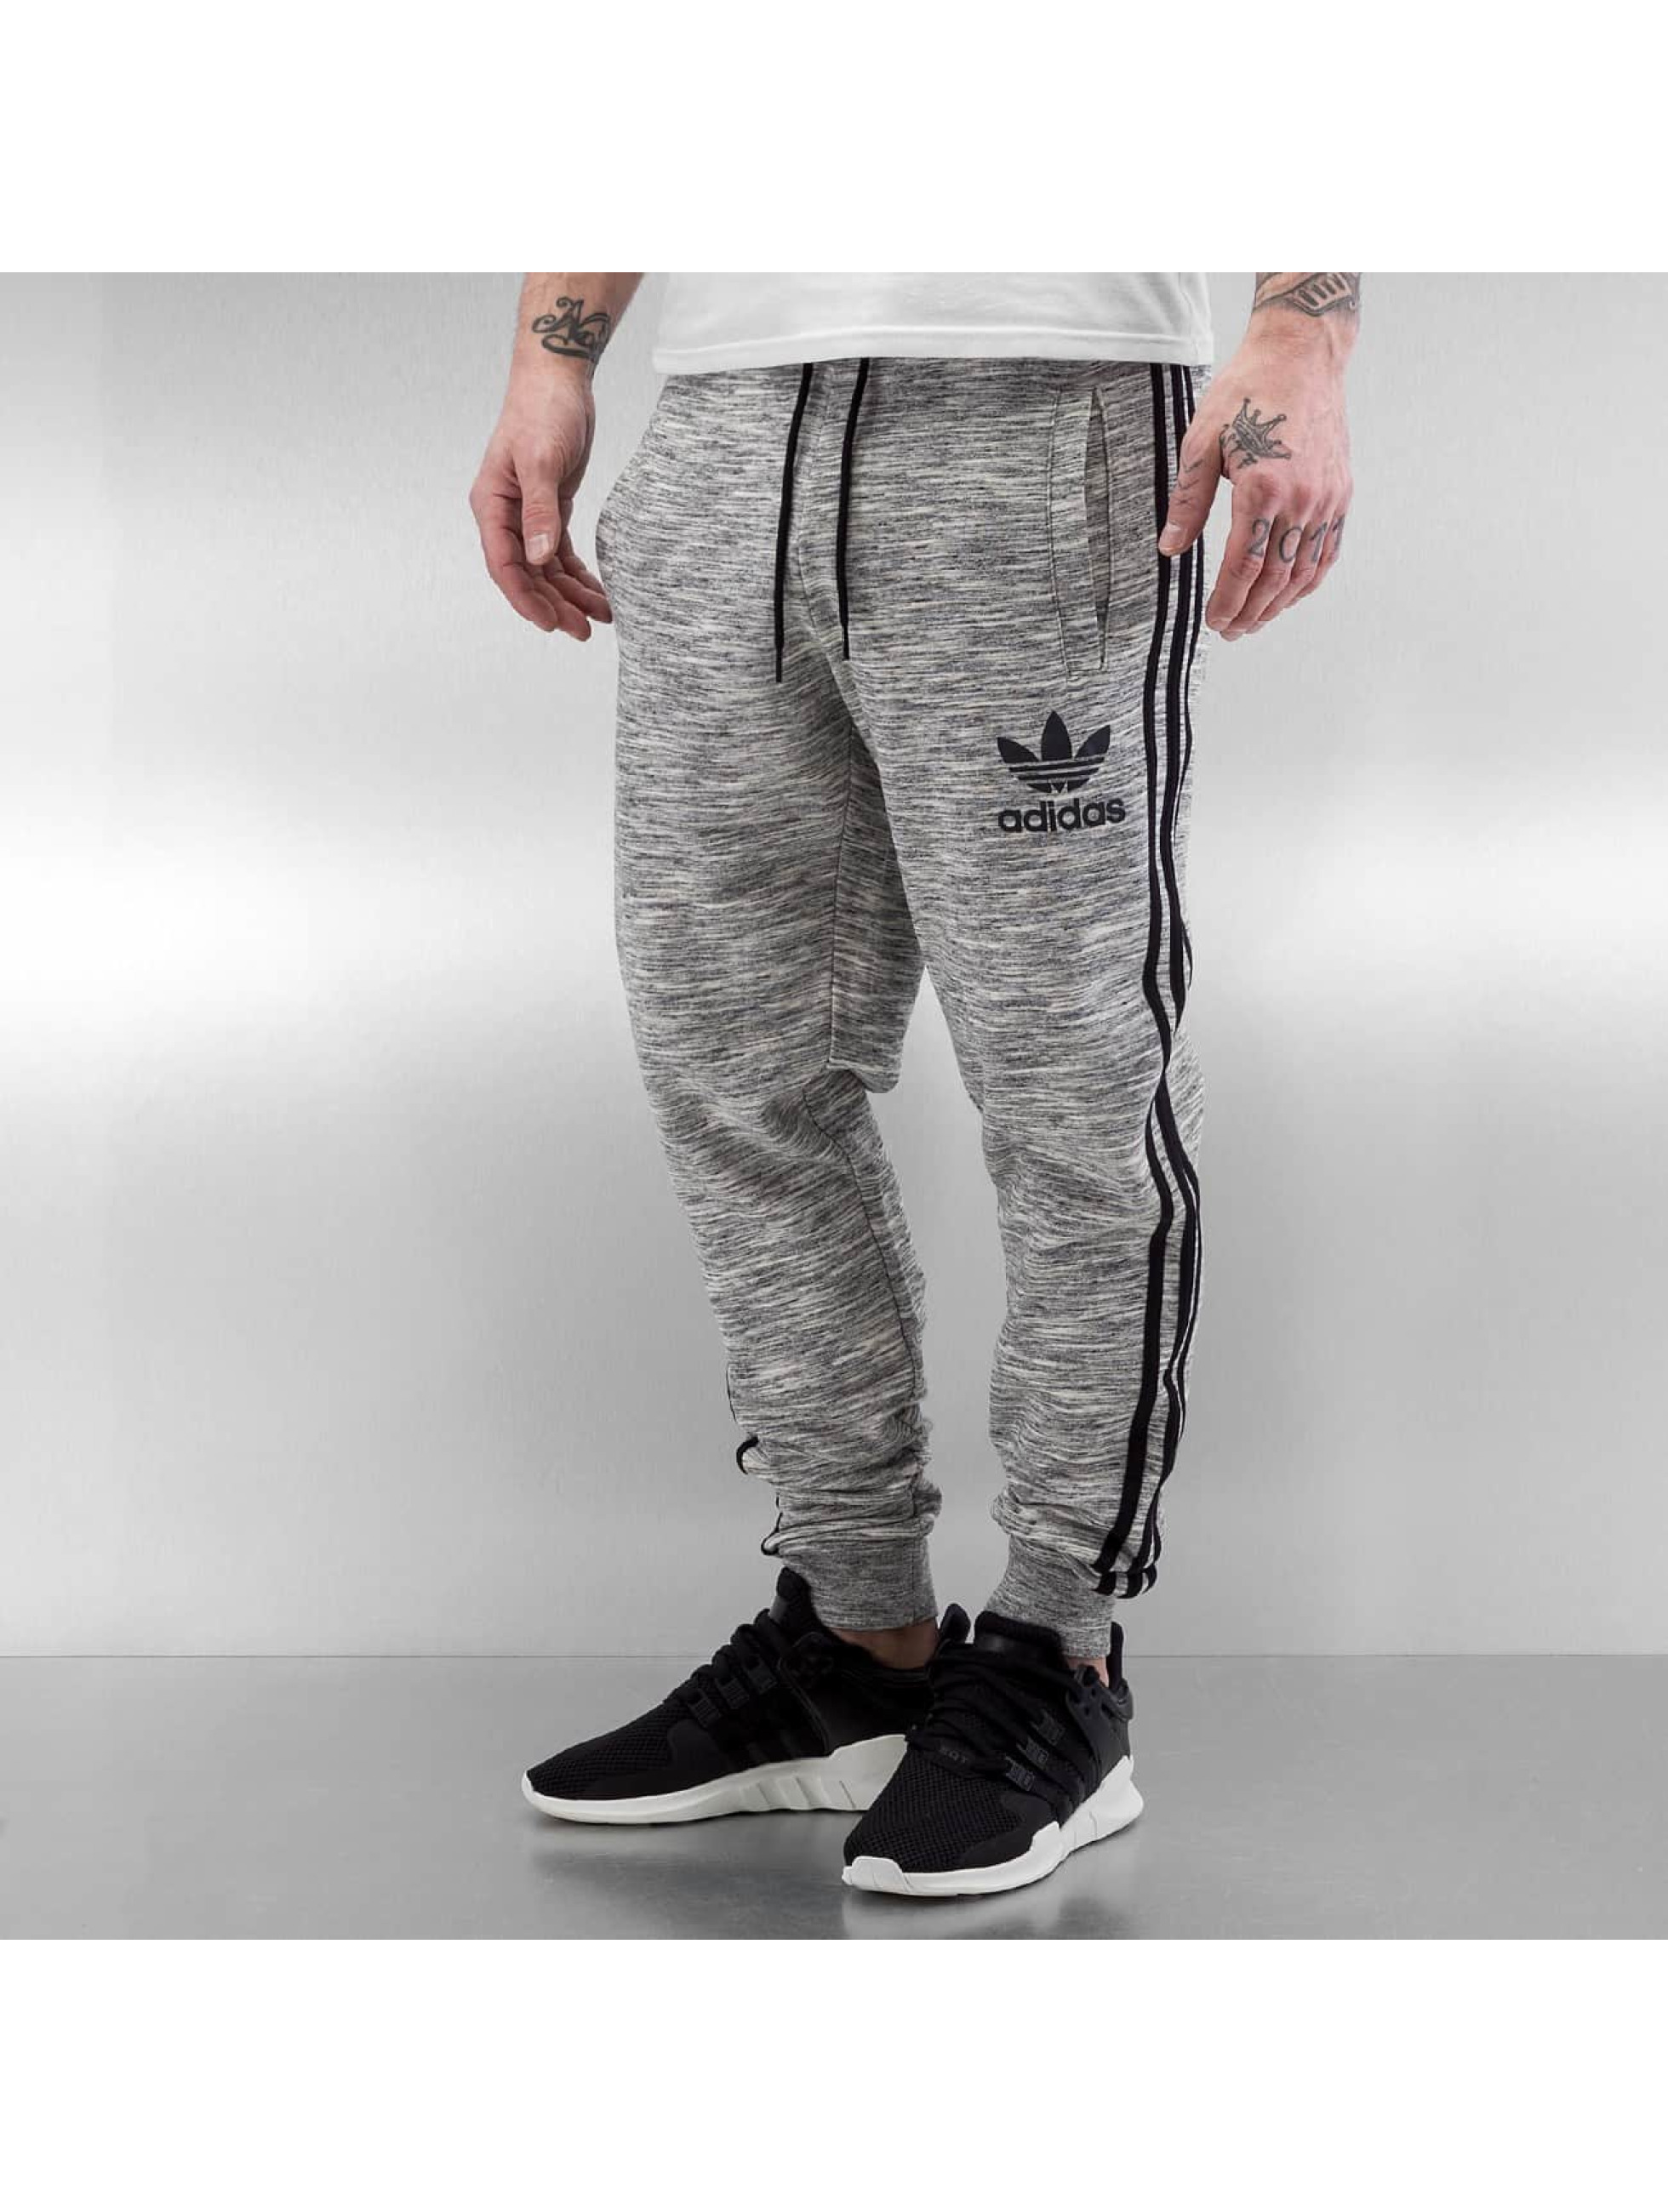 adidas herren jogginghose clfn french terry in grau 303193. Black Bedroom Furniture Sets. Home Design Ideas